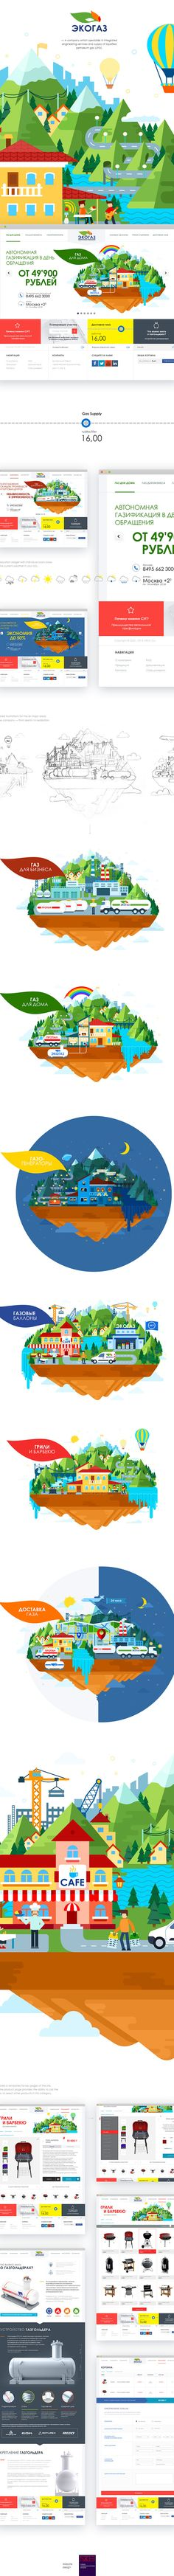 Love this style of illustration and simplicity. Ecogaz by Nazir Khasavov, via Behance